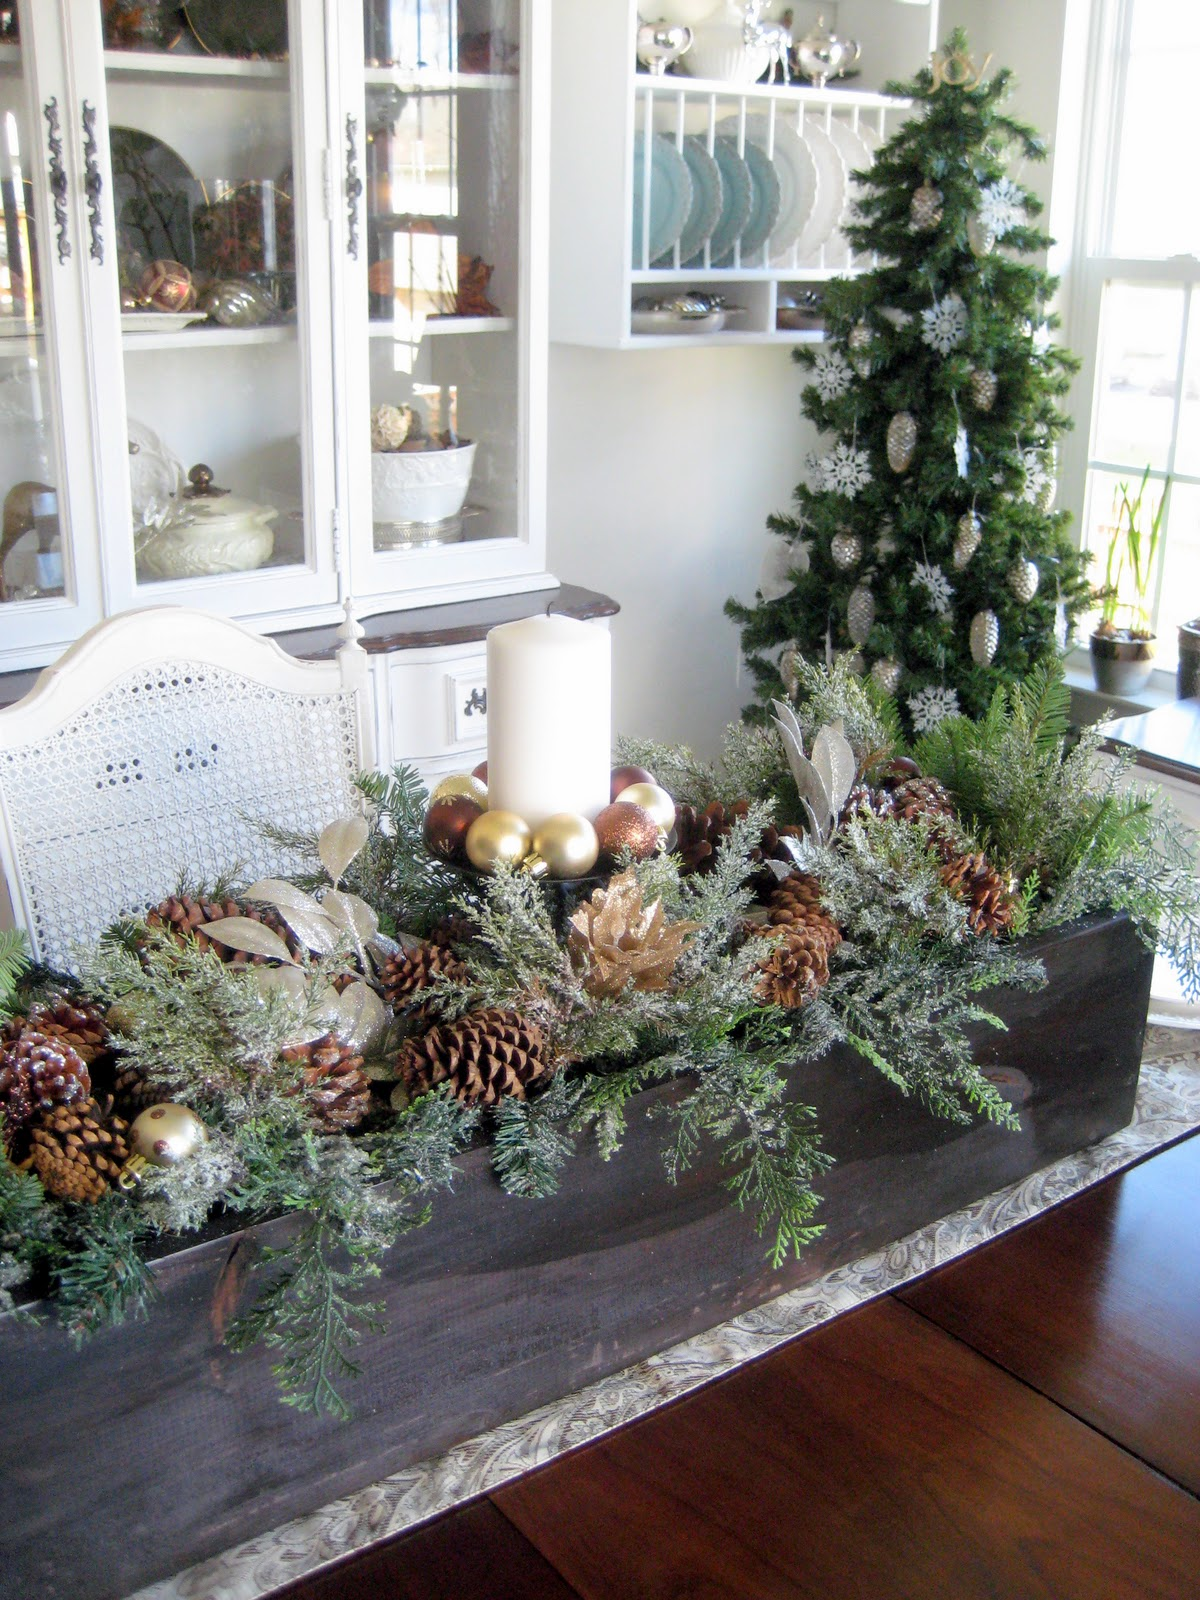 Inspiration for decorating christmas with fresh